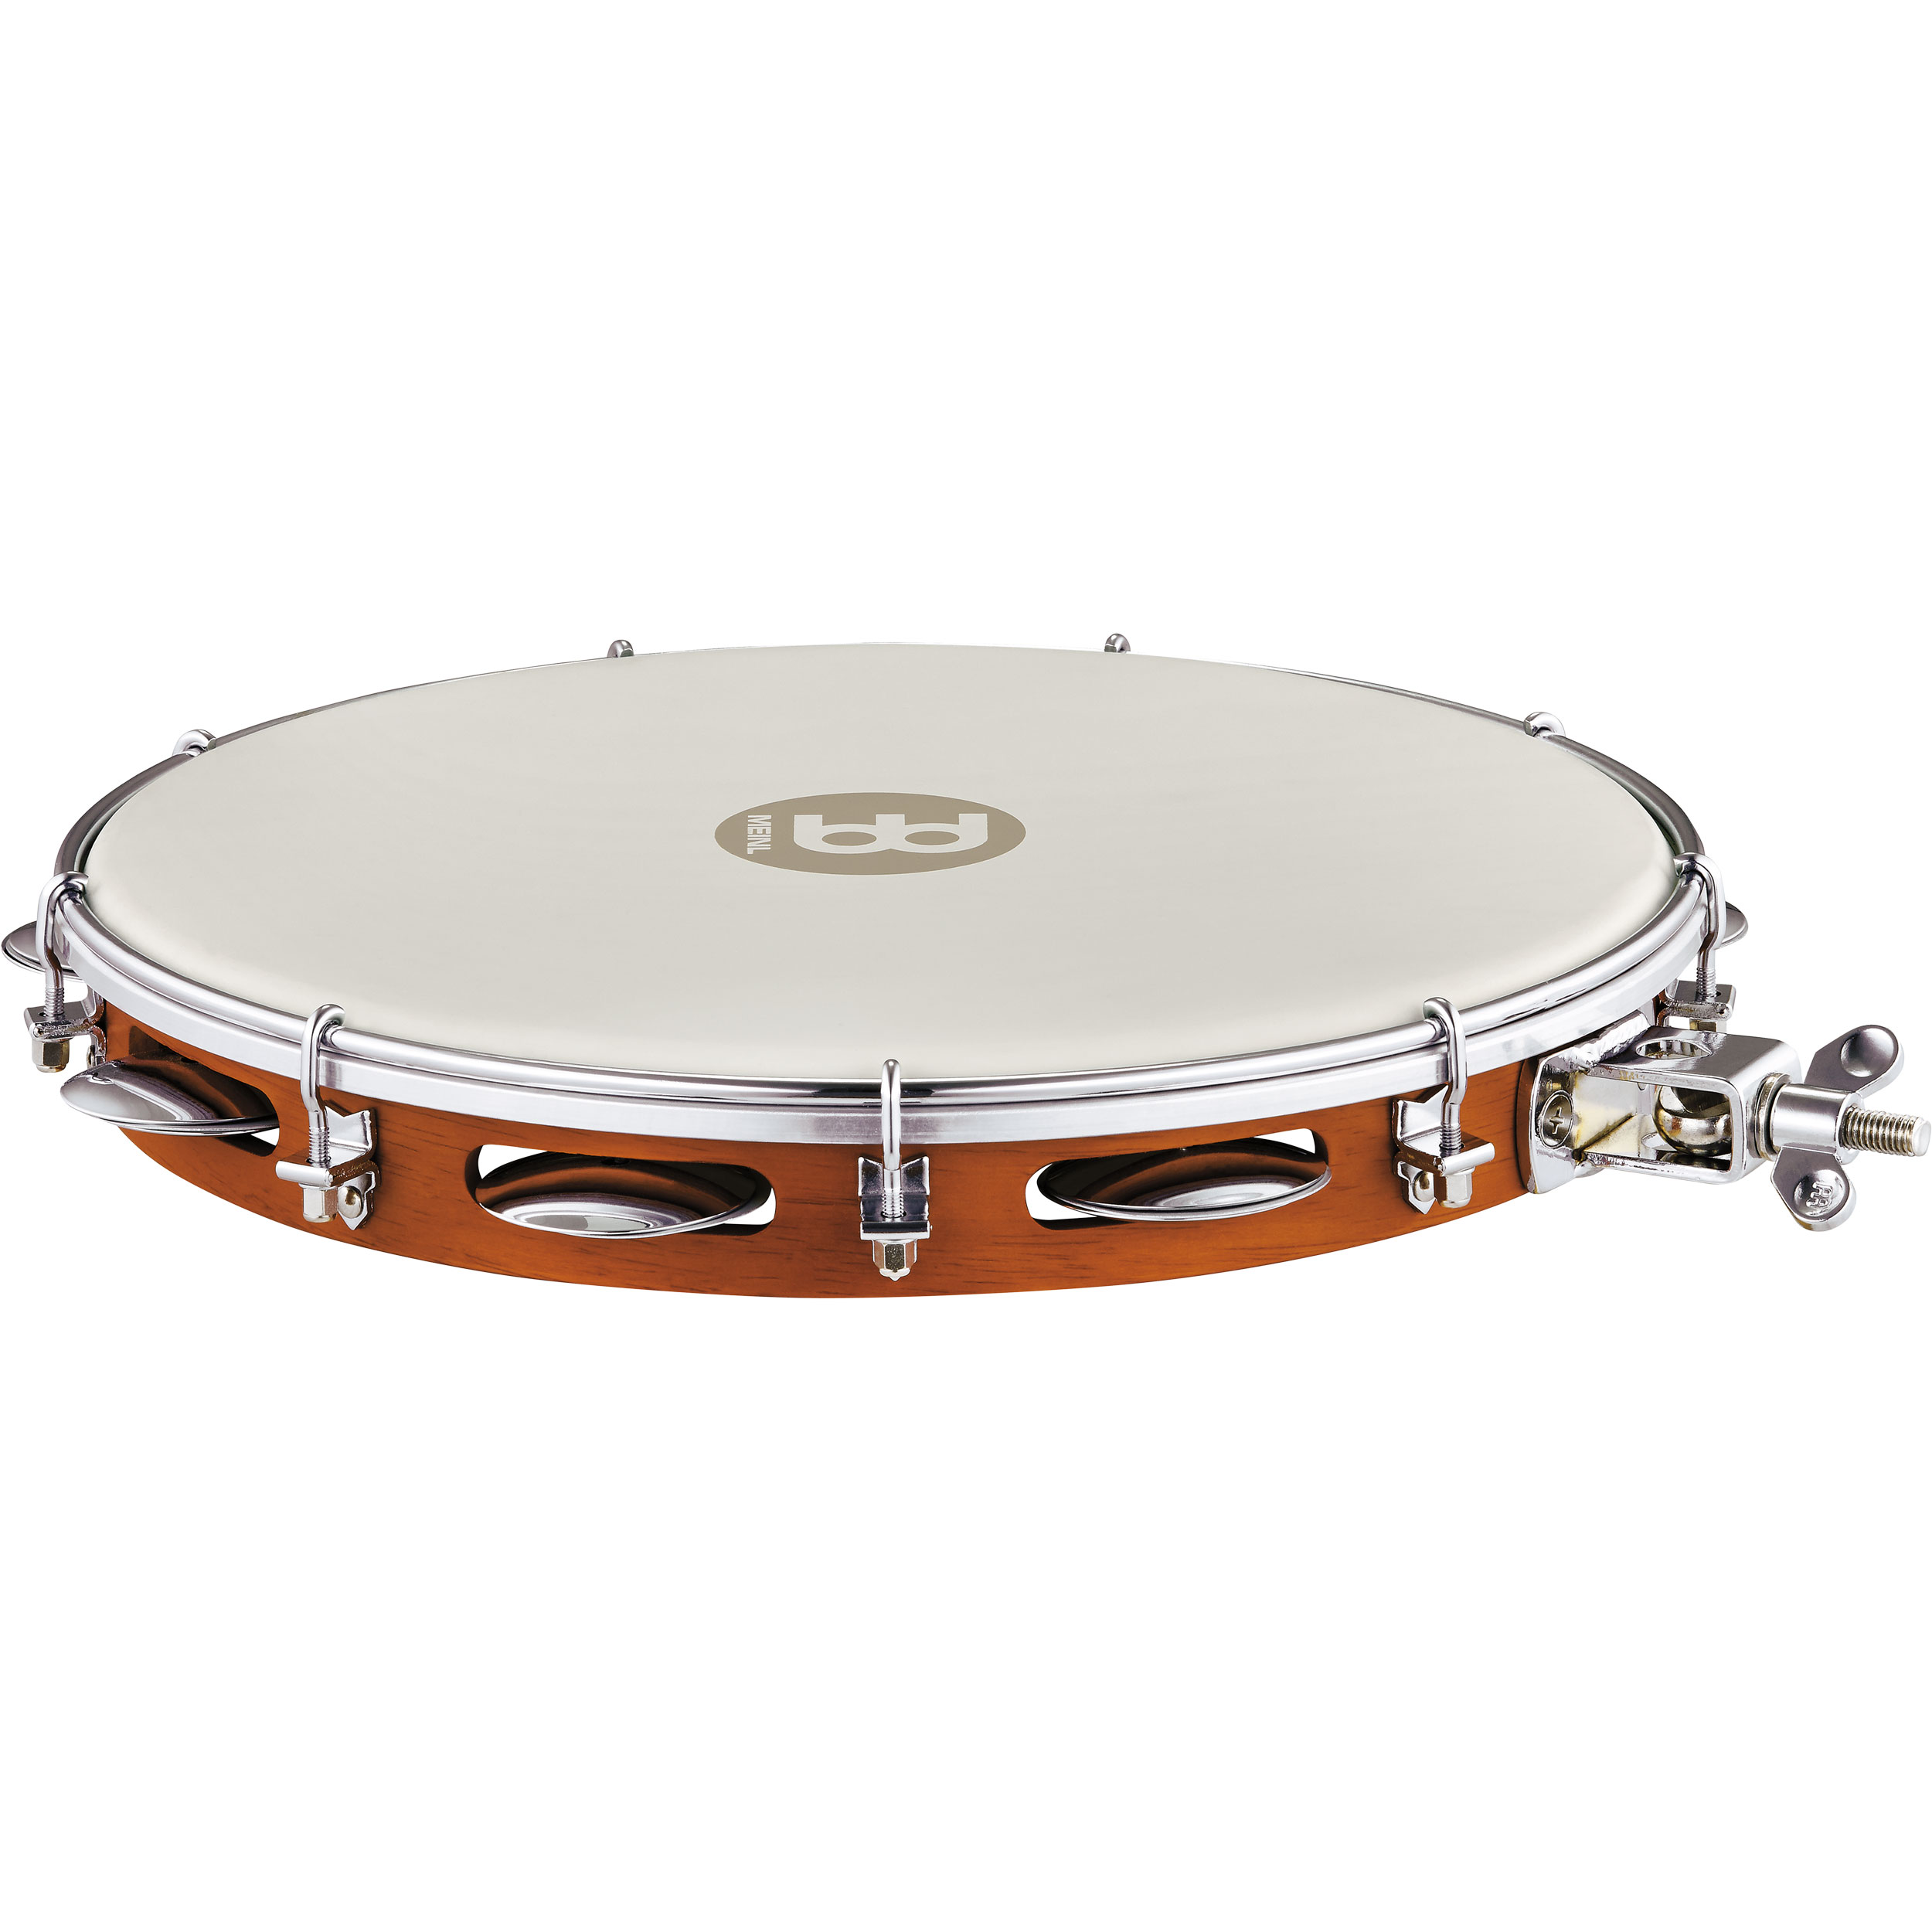 "Meinl 12"" Traditional Wood Pandeiro with Holder"